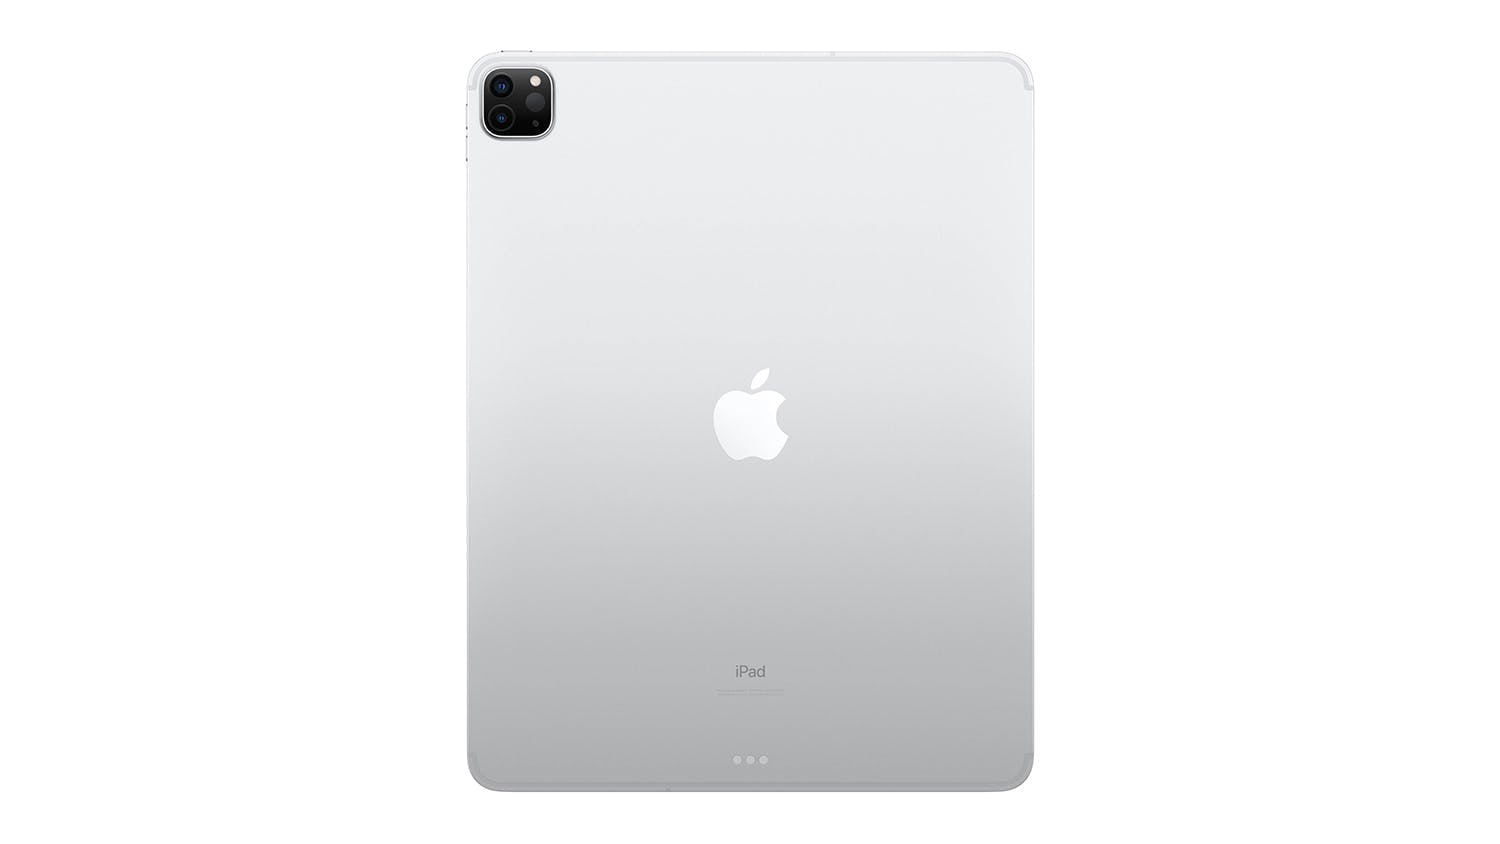 "iPad Pro 12.9"" Wi-Fi + Cellular 128GB - Silver"